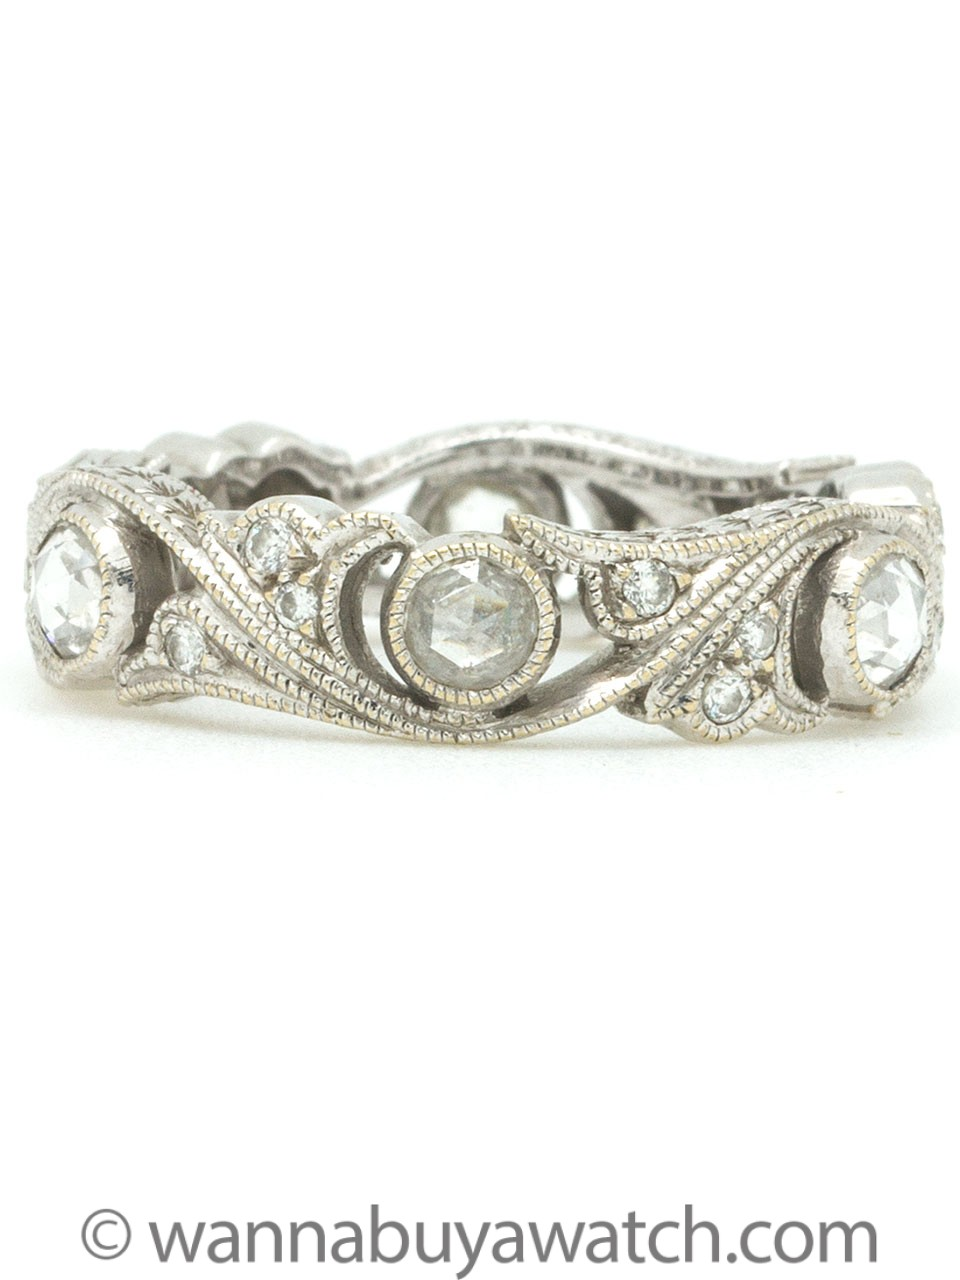 Vintage Style 18K WG Eternity Band with Rose Cut Diamonds 0.60ct circa 2000s